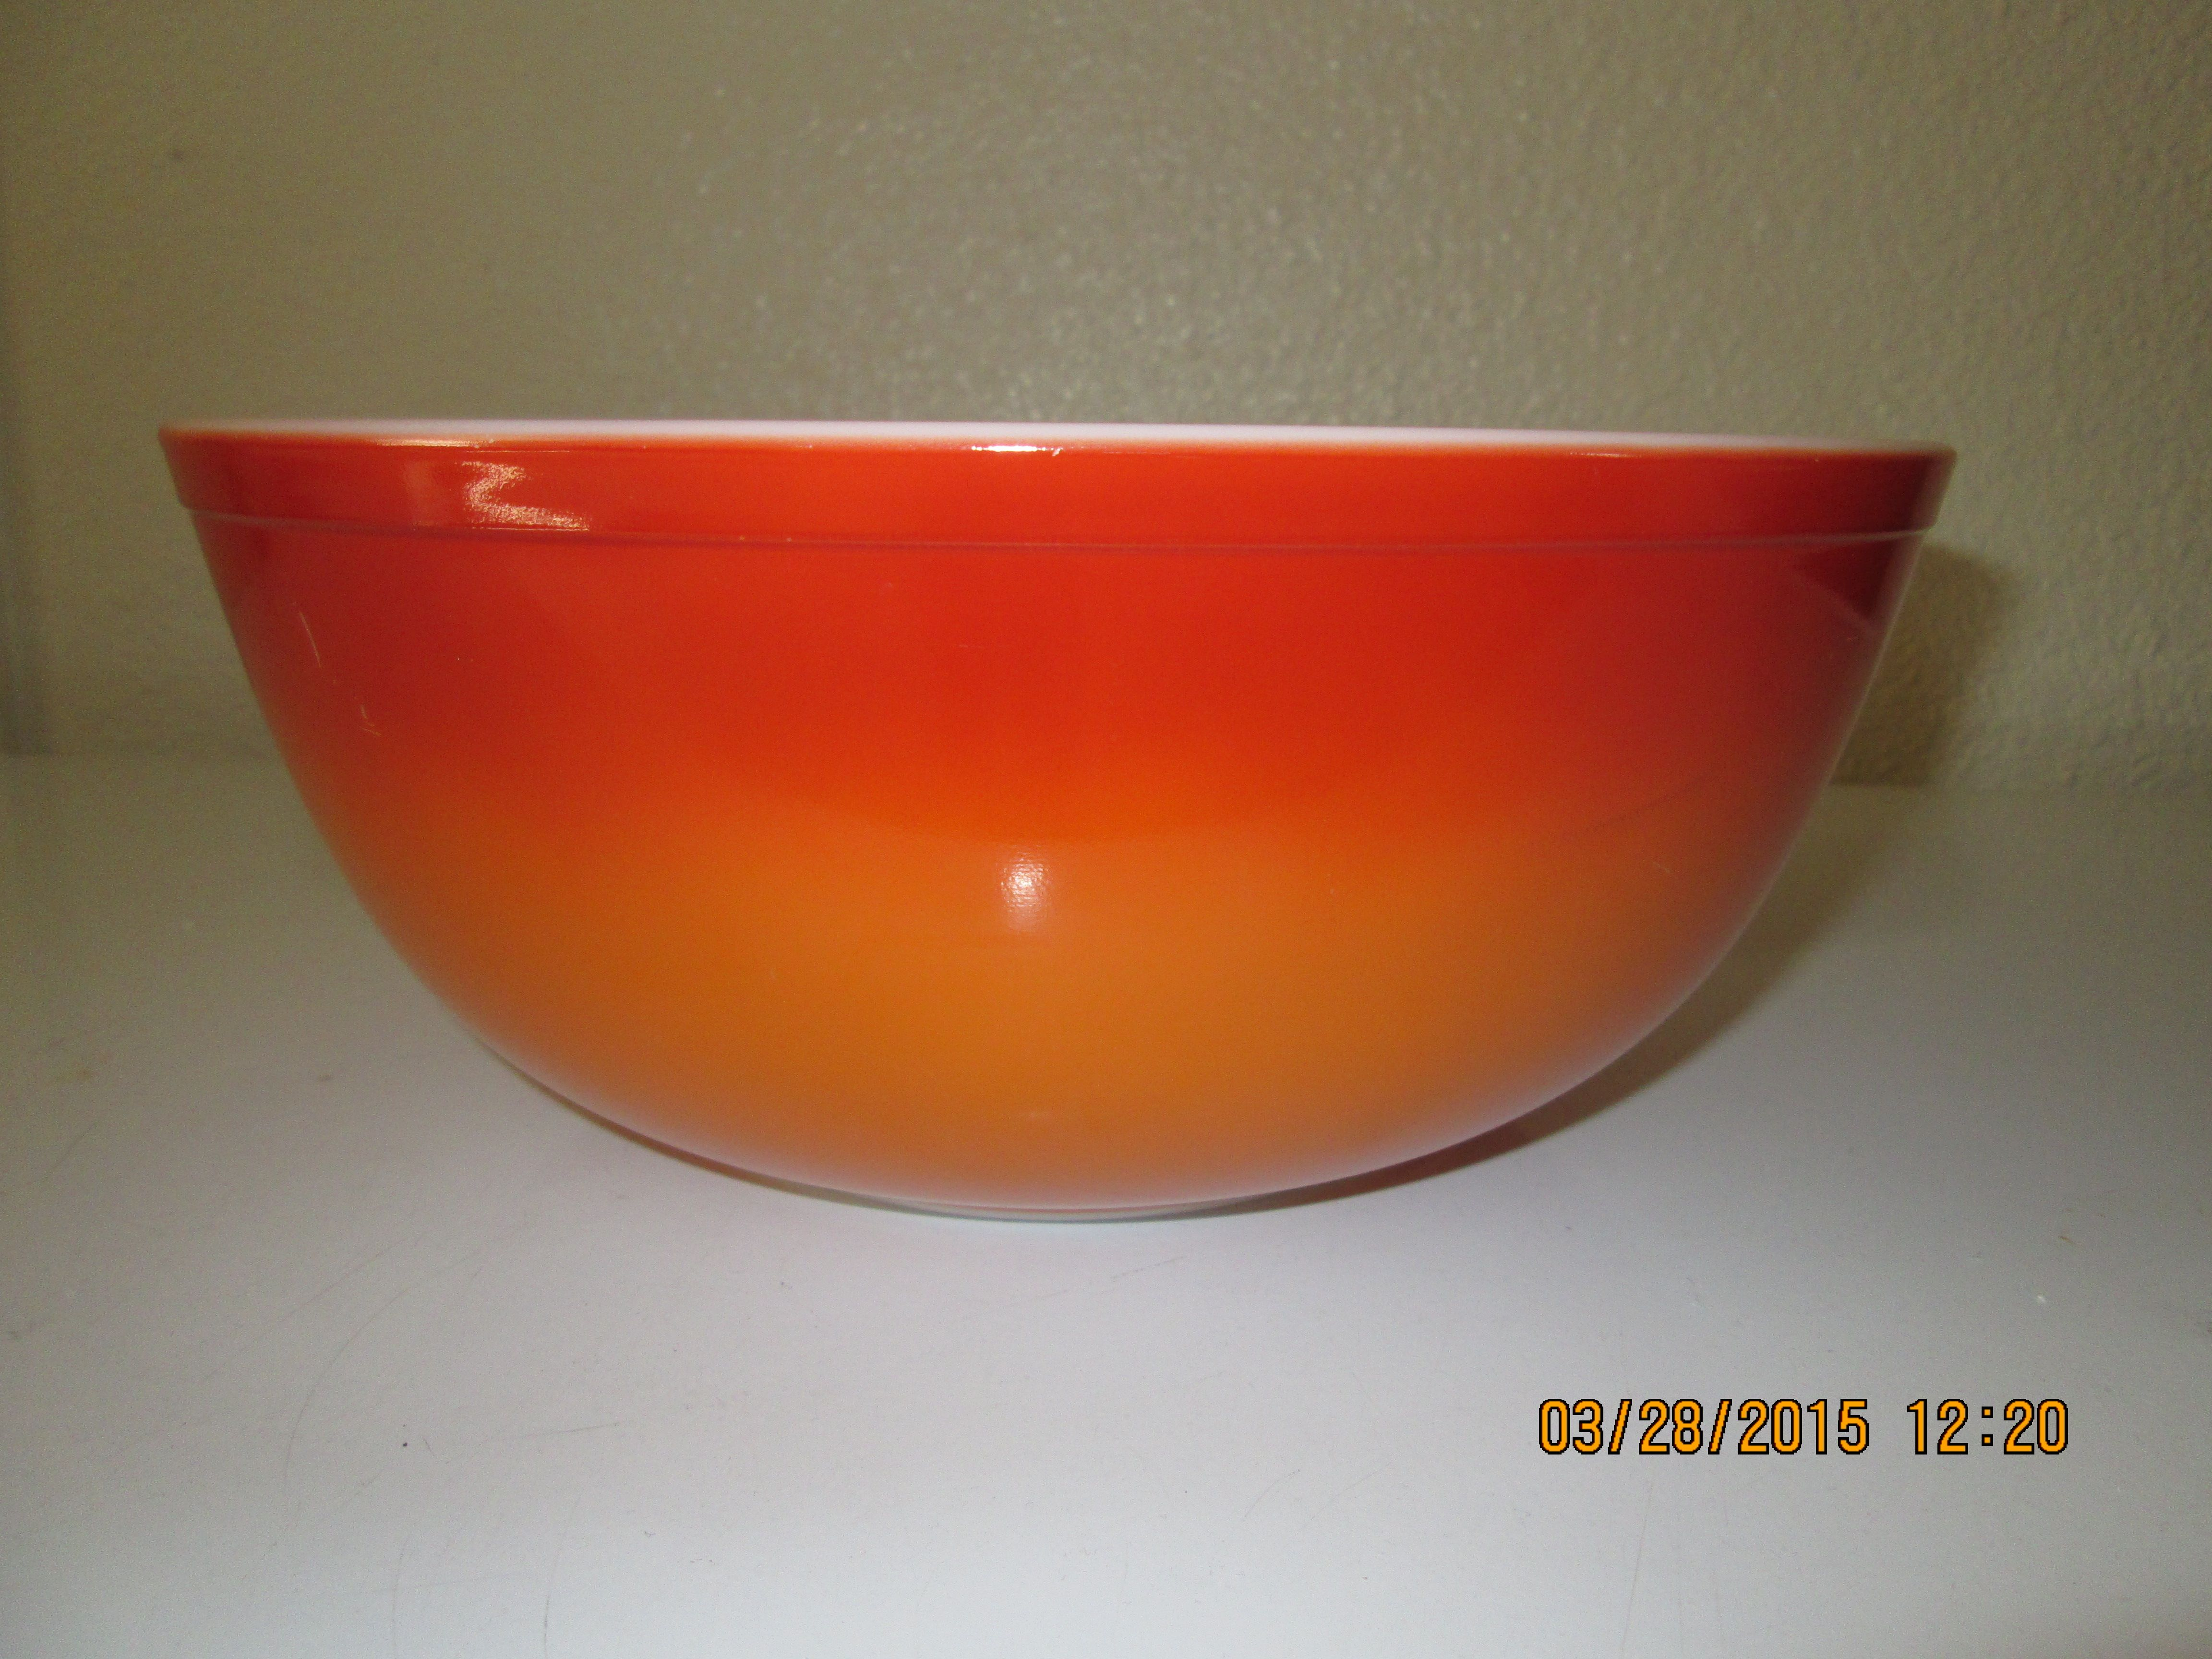 Orange Glo 4 Qt Vintage Pyrex Bowl I Found At A Local Thrift Store In Manteca Ca Paid An Awesome Price For It A Vintage Pyrex Bowls Pyrex Vintage Orange Glo